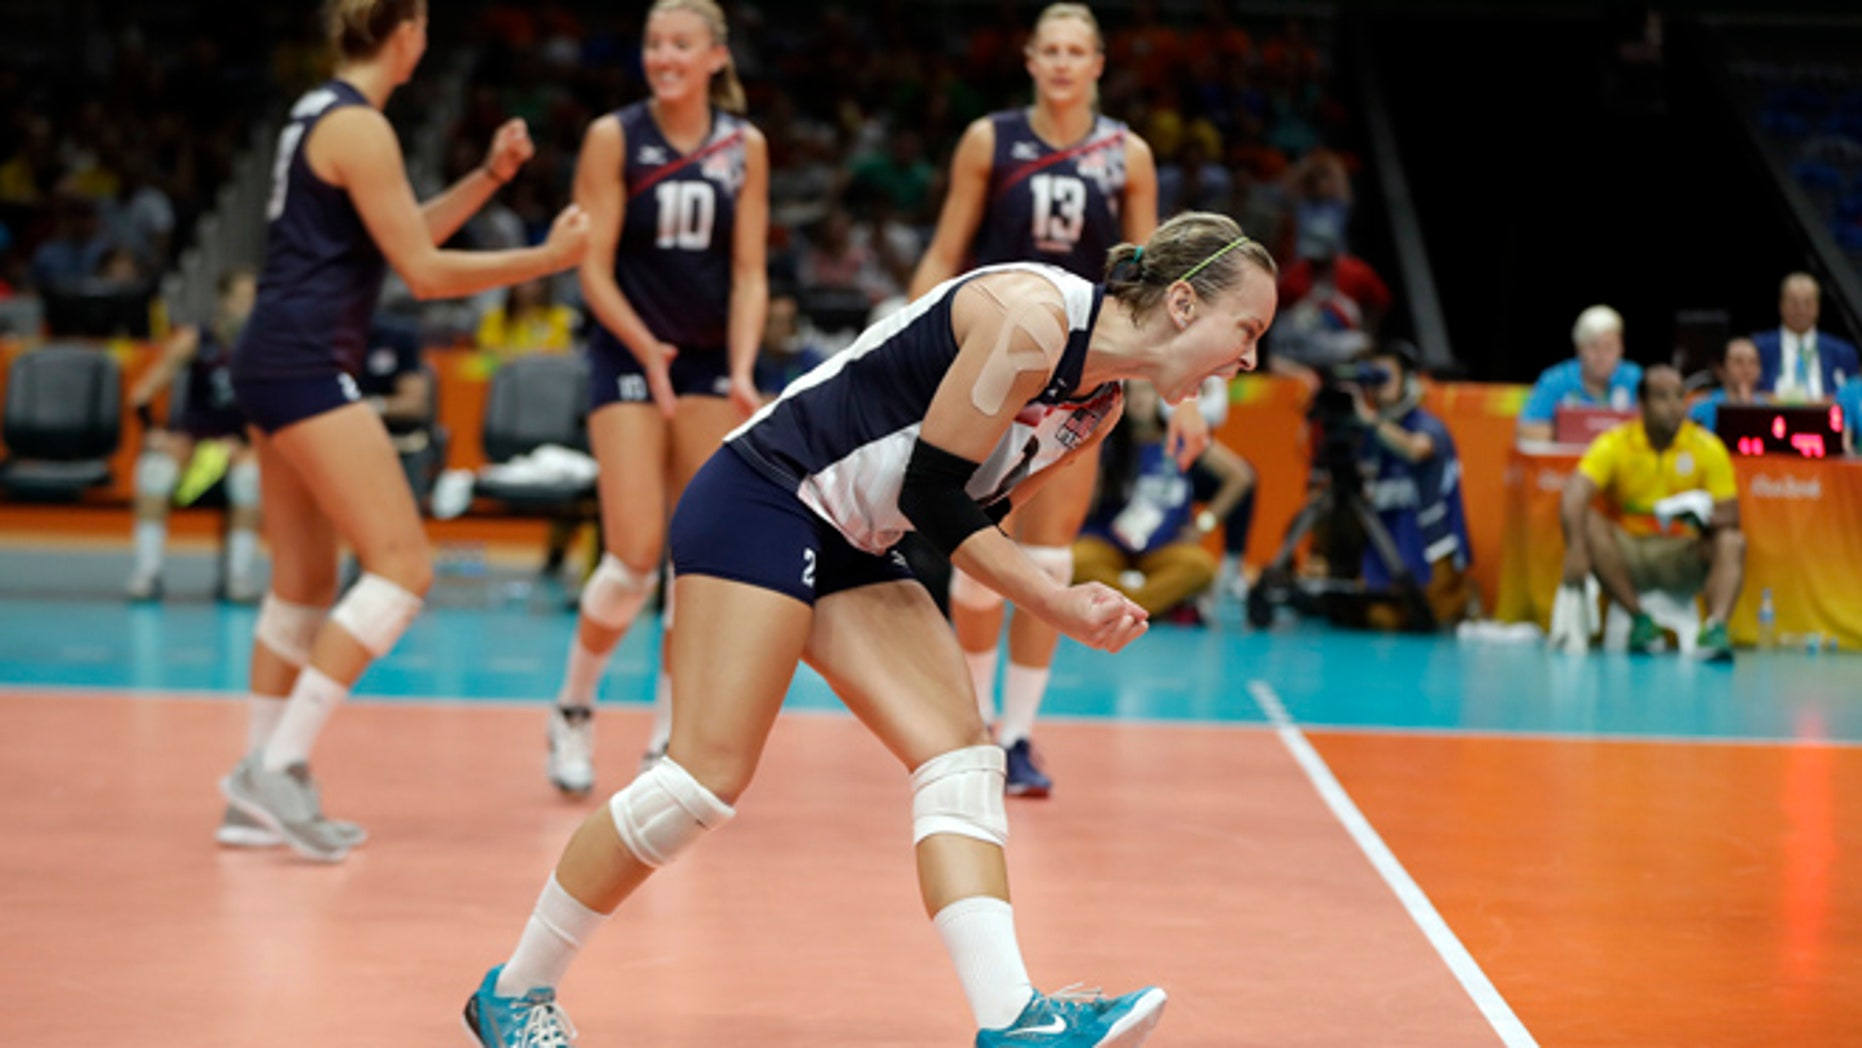 United States' Kayla Banwarth celebrates during a Women's preliminary volleyball match against the Netherlands at the 2016 Summer Olympics in Rio de Janeiro, Brazil, Monday, Aug. 8, 2016.